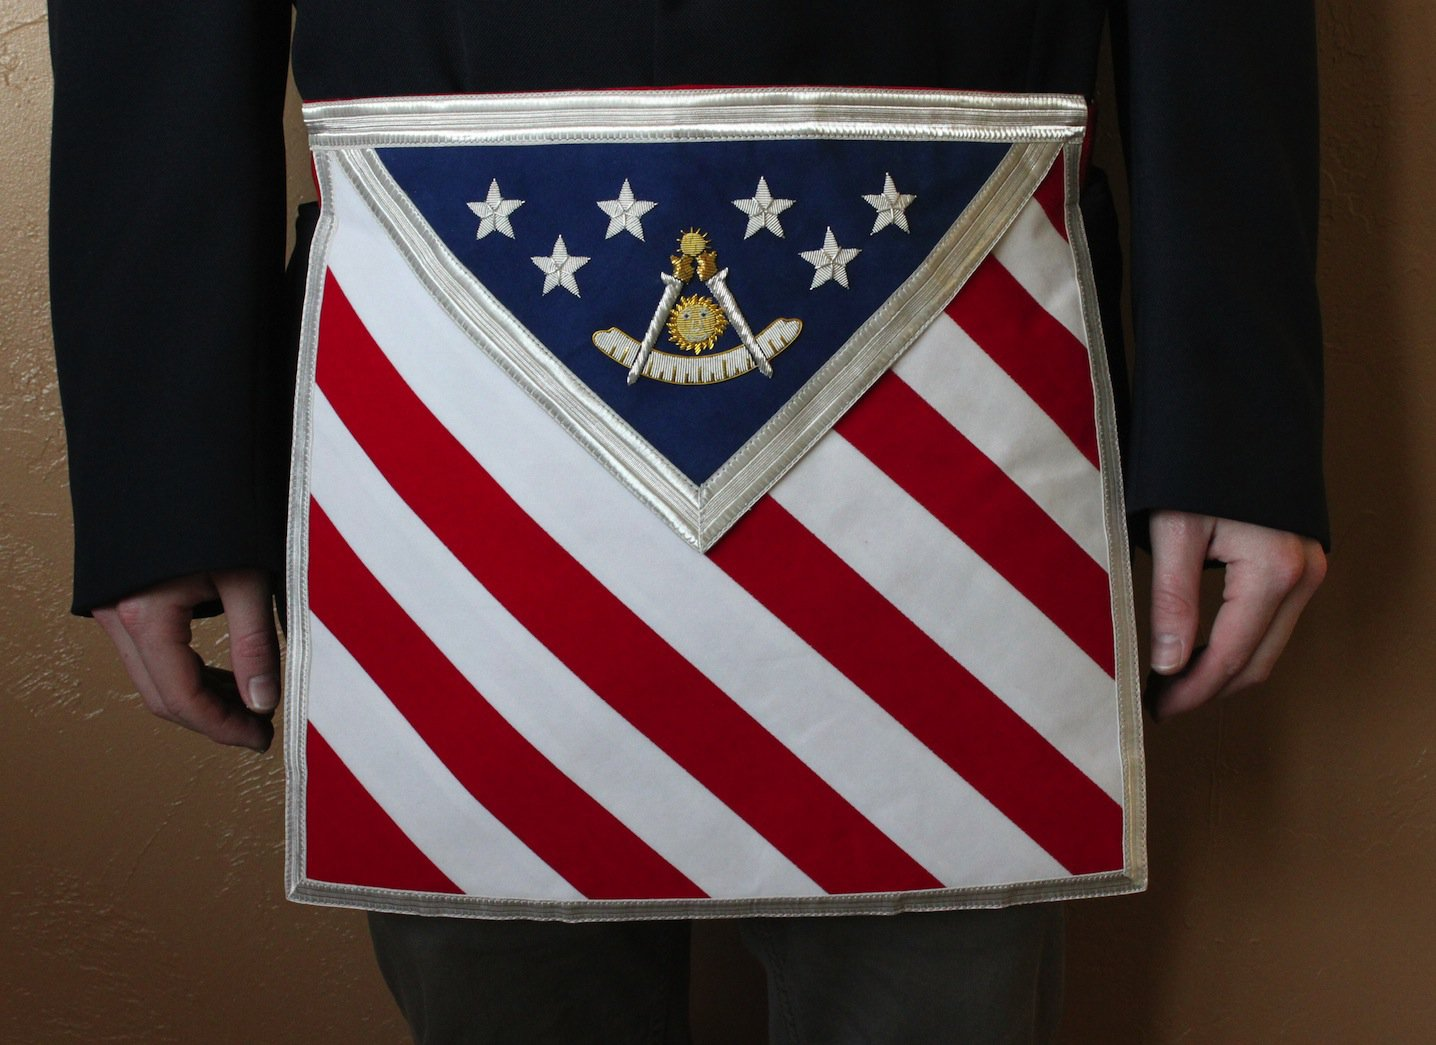 Blue Lodge Patriotic Past Master Masonic Freemason U.S. Flag Apron